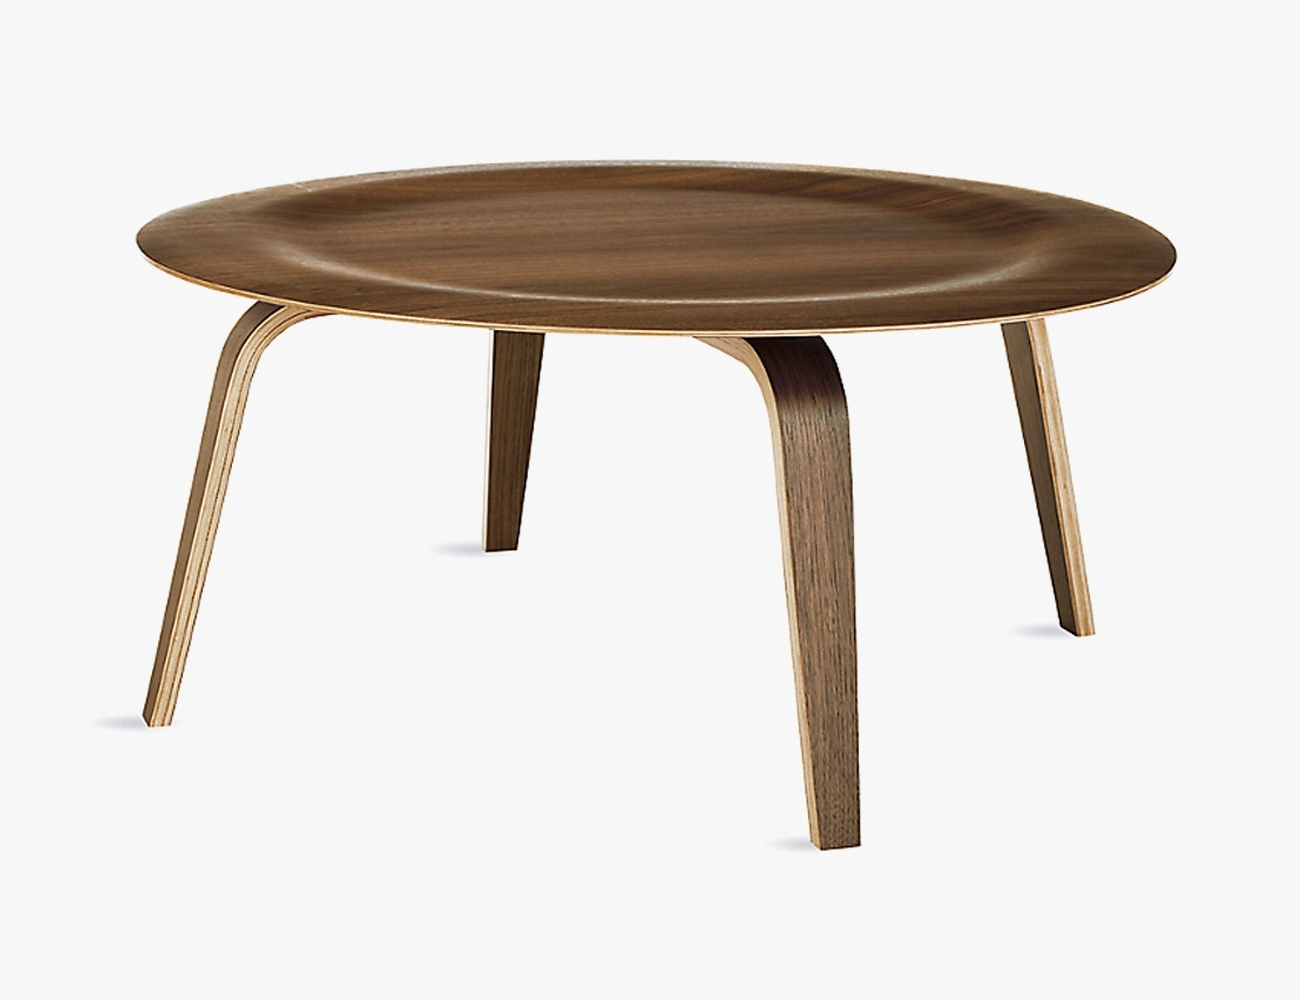 Well Liked Shroom Large Coffee Tables Inside The Best Coffee Tables For Every Budget And Style (View 9 of 20)